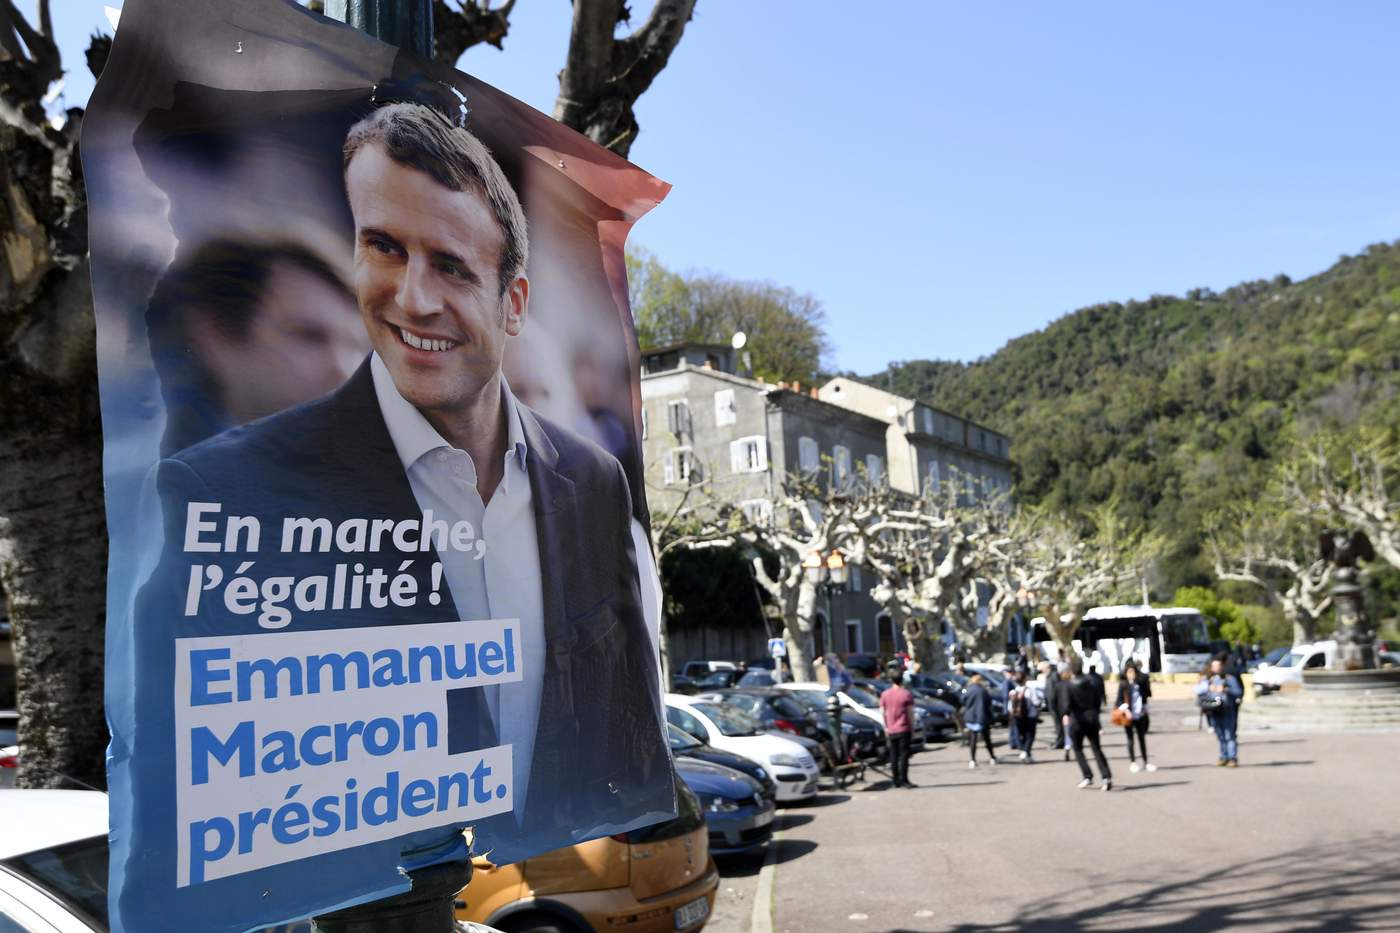 Emmanuel Macron Is This The Man Who Can Radically Change France